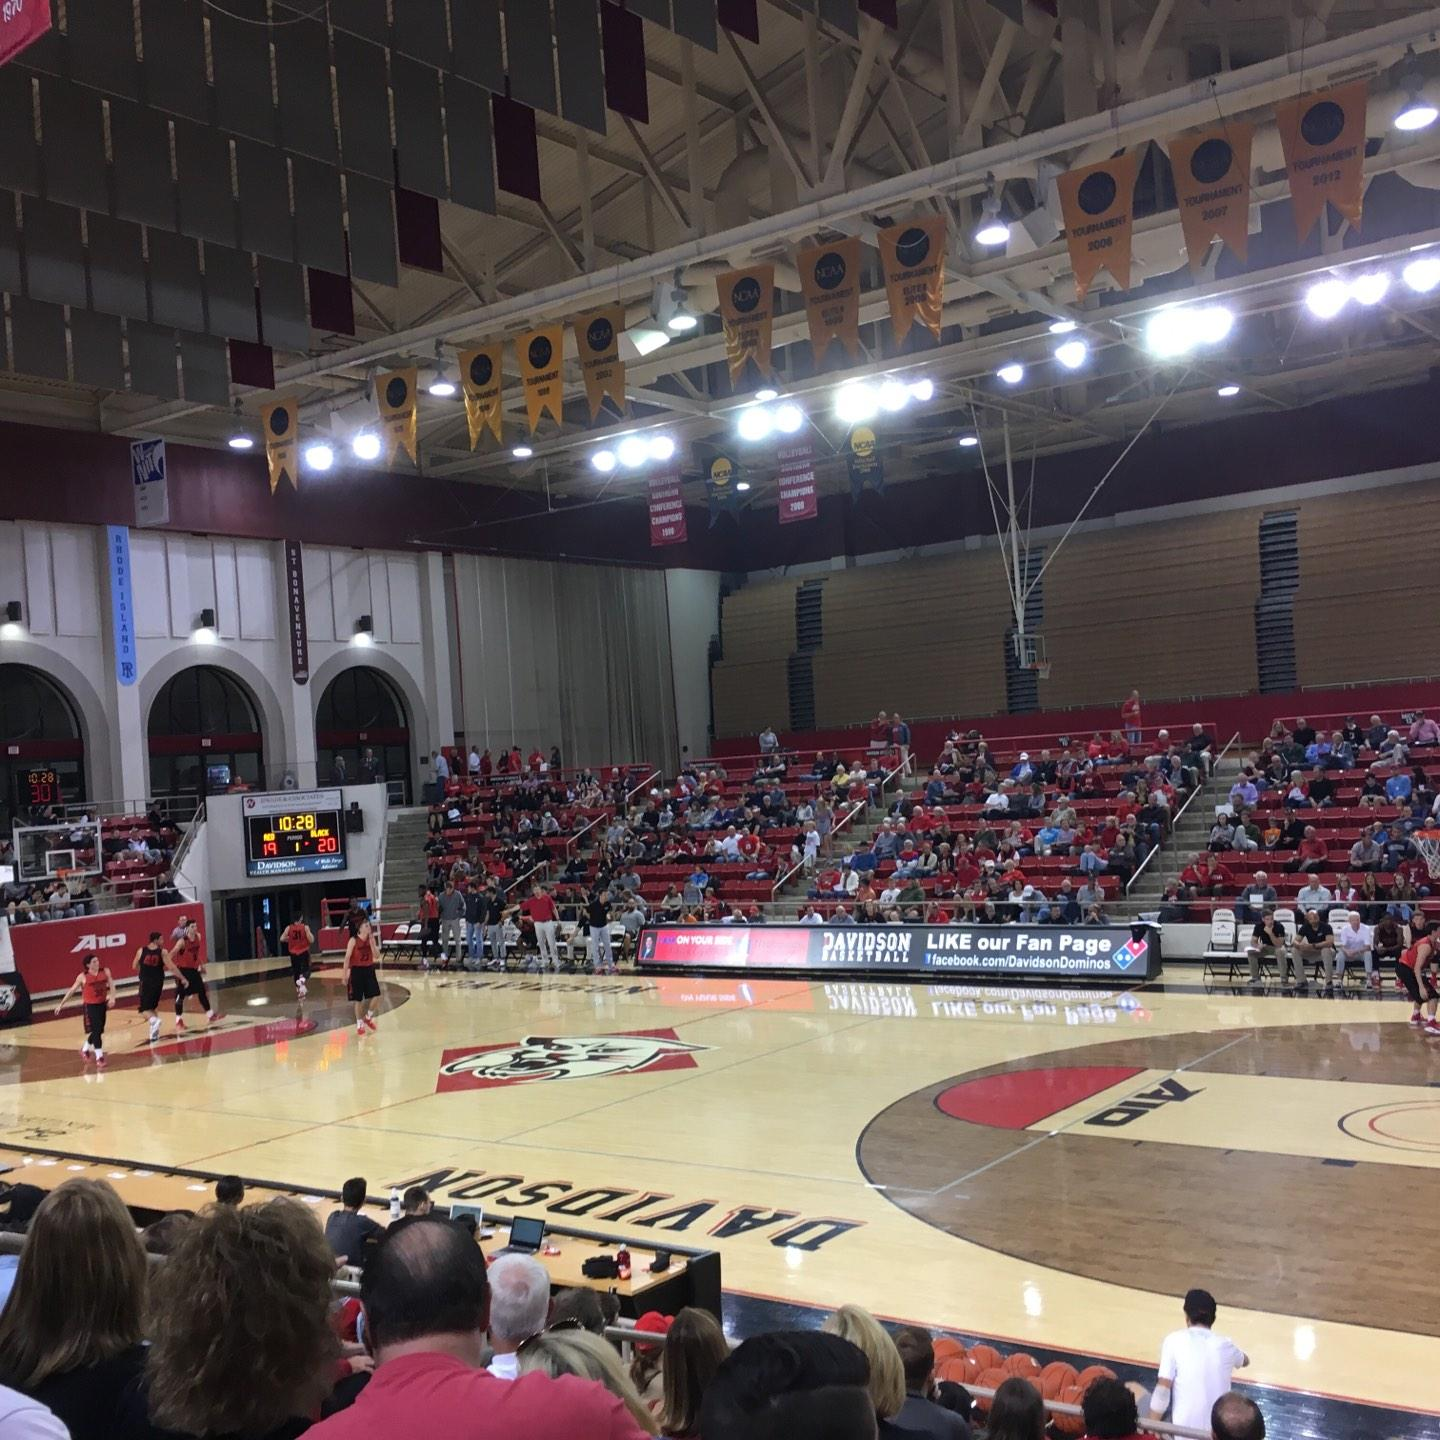 John M. Belk Arena Section 15 Row G Seat 1